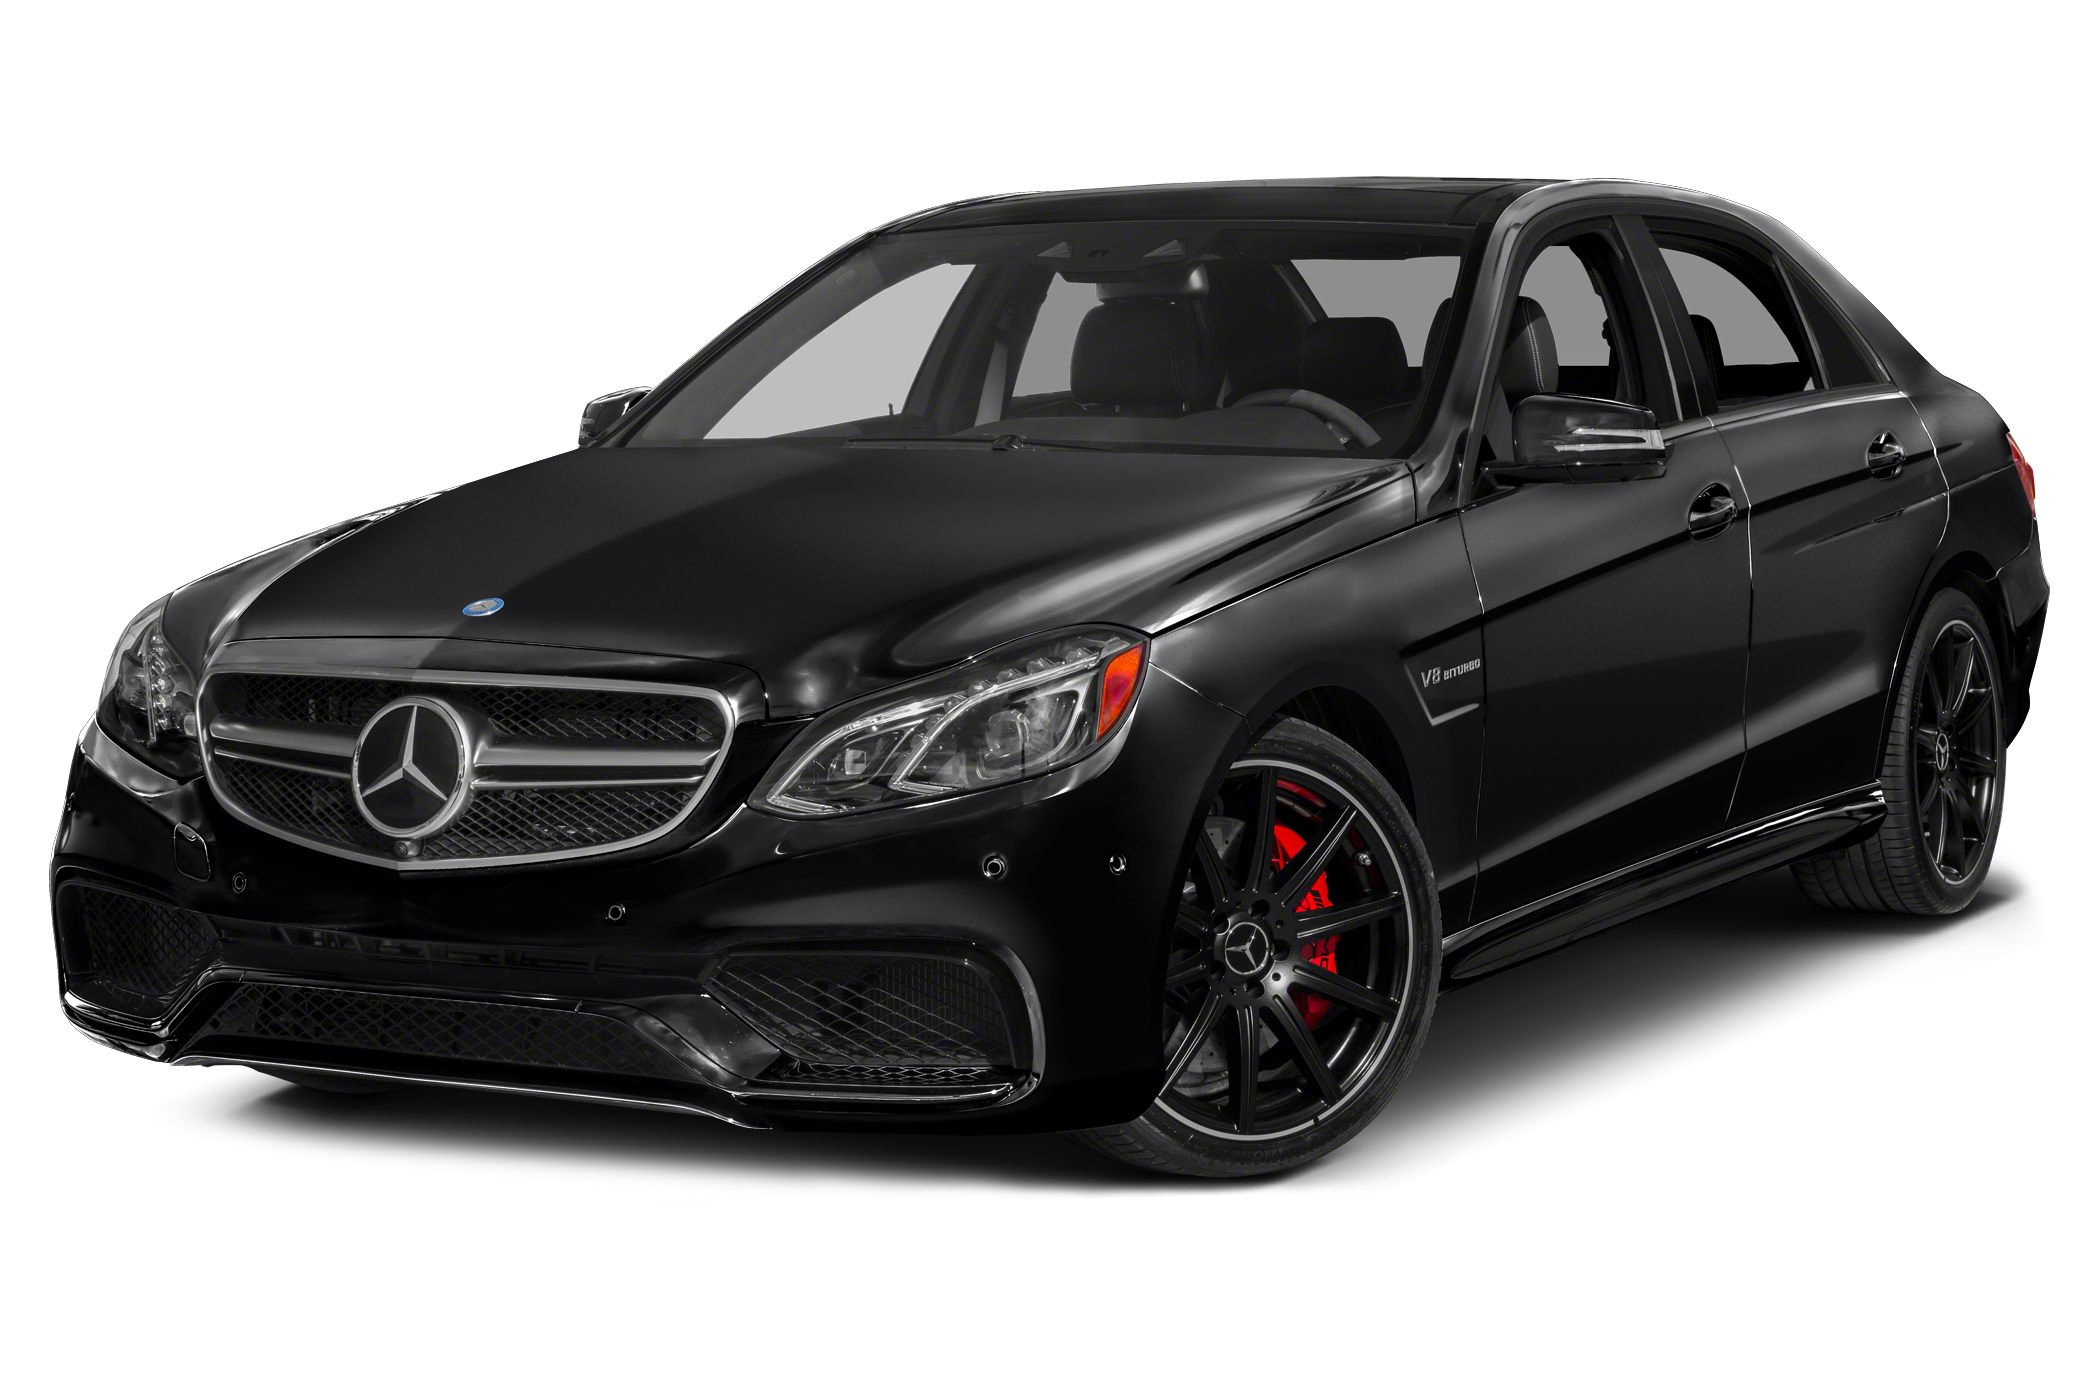 2016 Mercedes Benz Amg E 63 Sedan >> 2016 Mercedes Benz Amg E S Model Amg E 63 4dr All Wheel Drive 4matic Sedan Pricing And Options